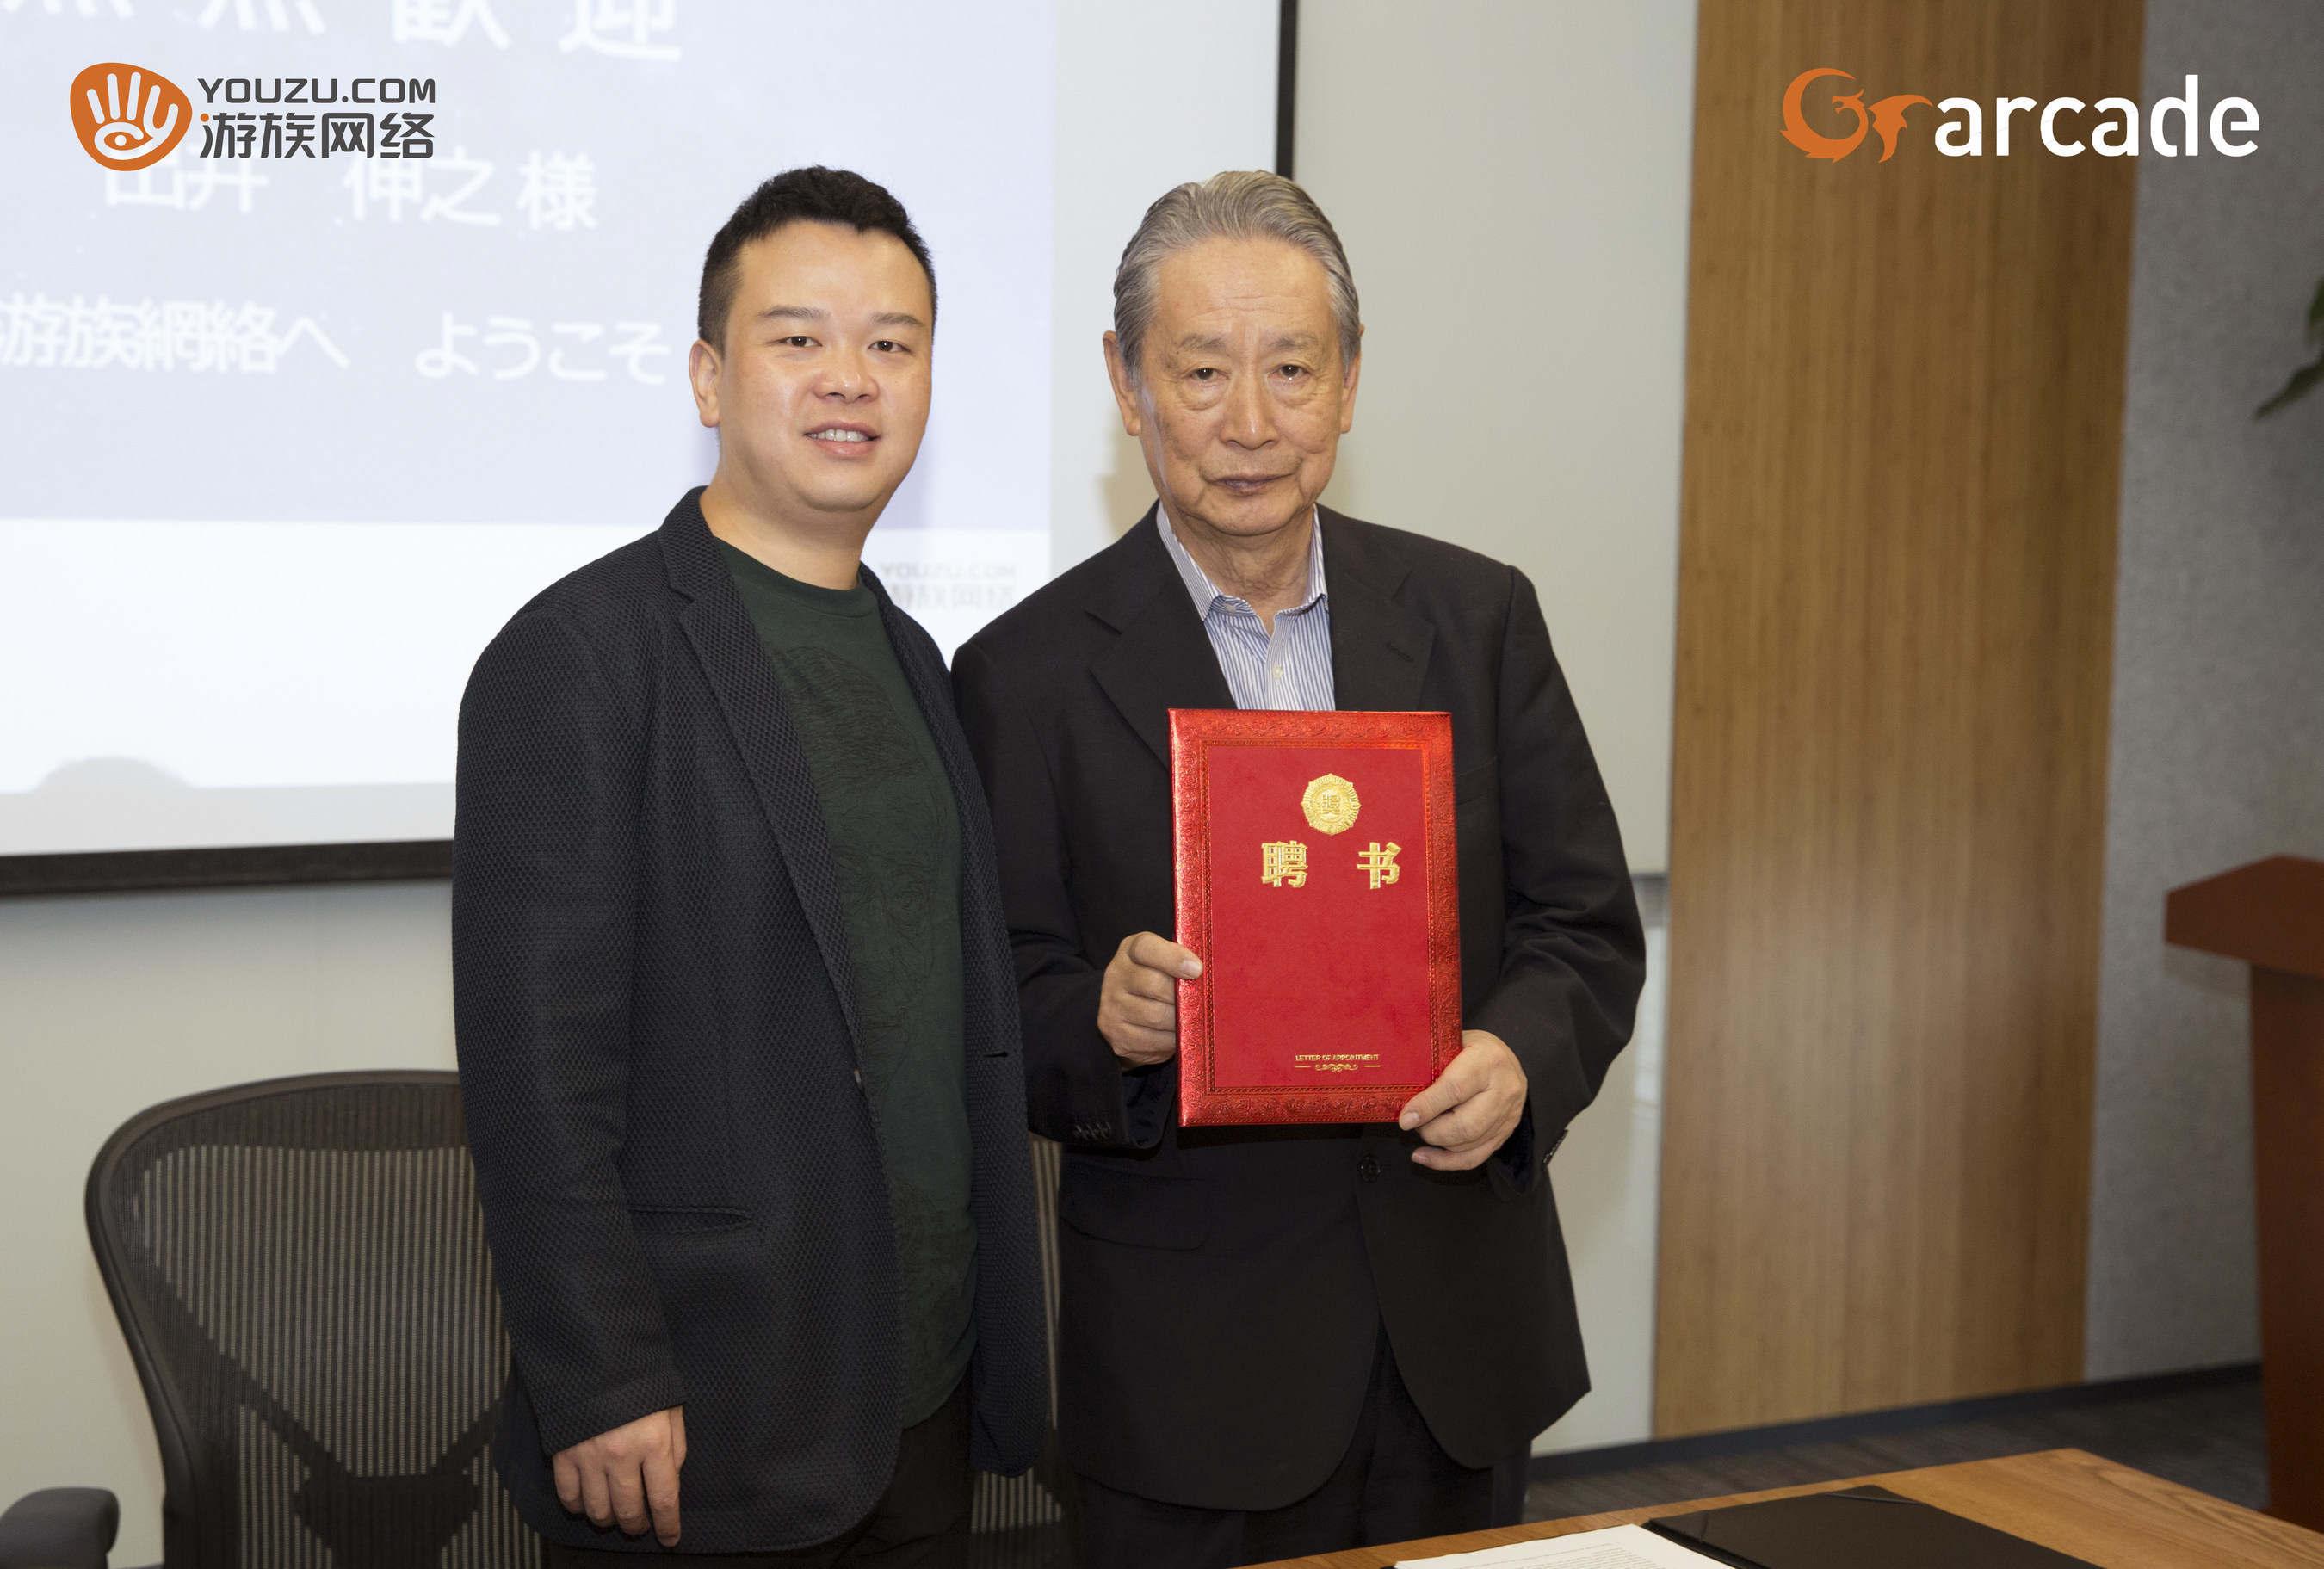 Former Sony President Nobuyuki Idei Retained as Consultant for Leading Chinese Game Developer Youzu.com